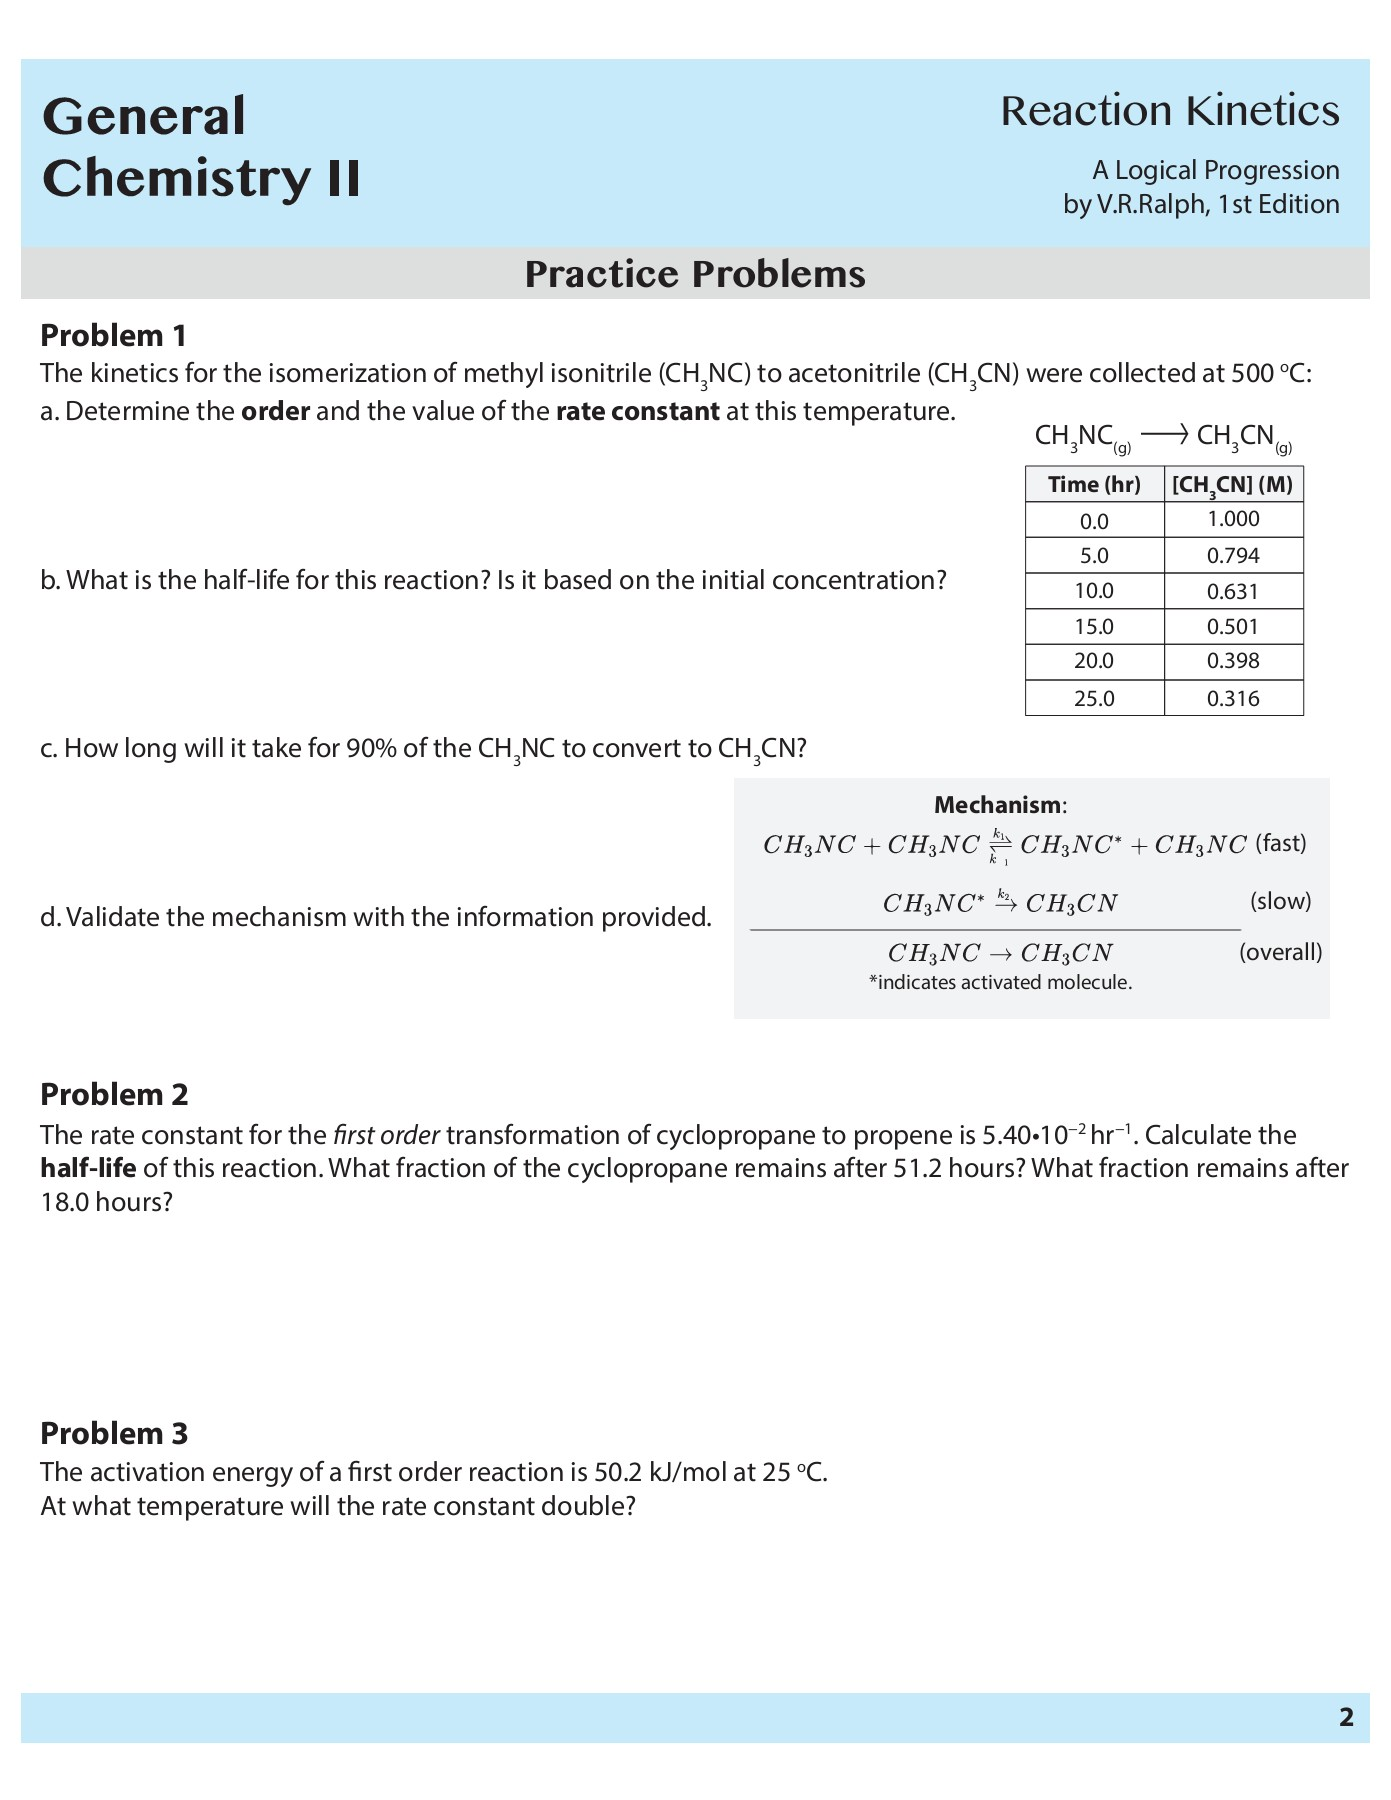 General Chemistry II - Reaction Kinetics Worksheet and ...